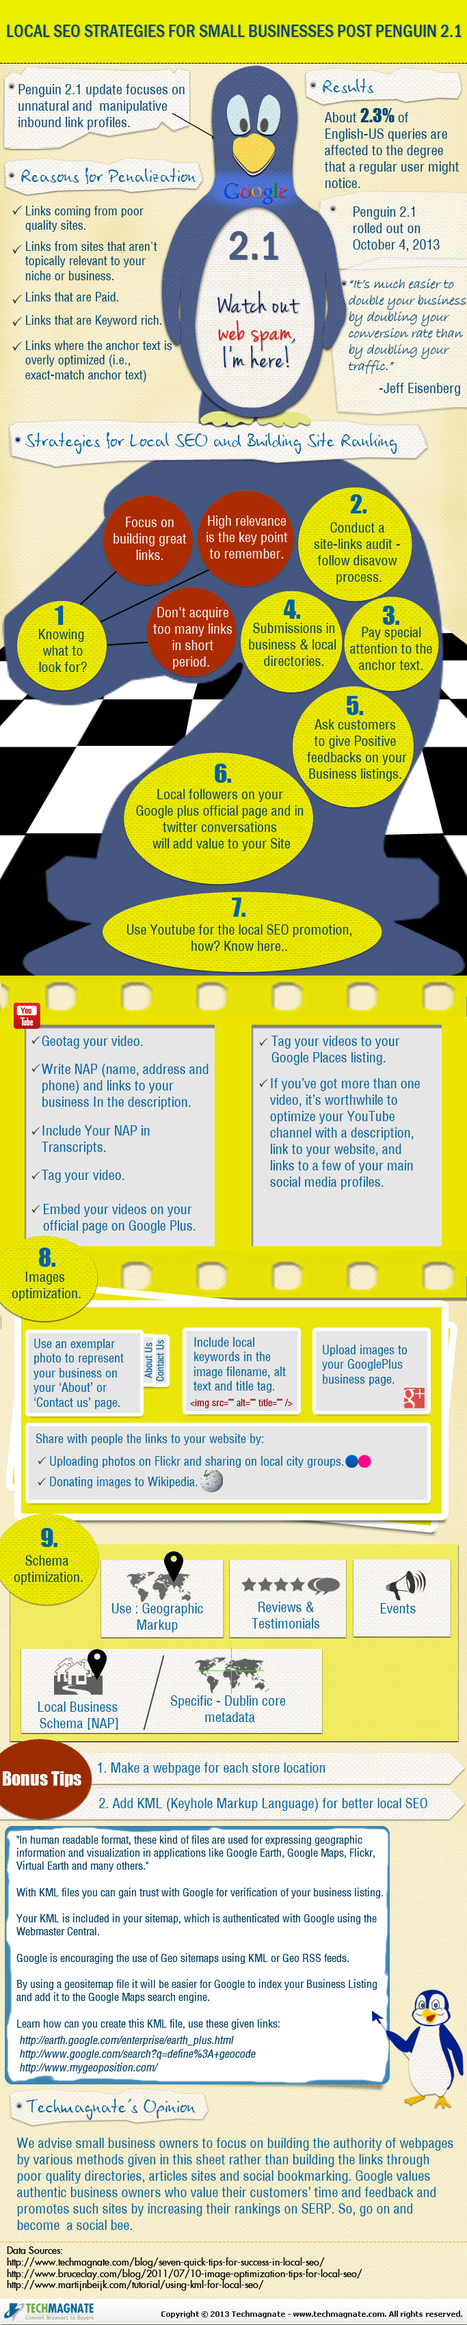 Post Penguin 2.1 Local SEO Strategies For Small Businesses [Infographic] | Local SEO Tips | Scoop.it